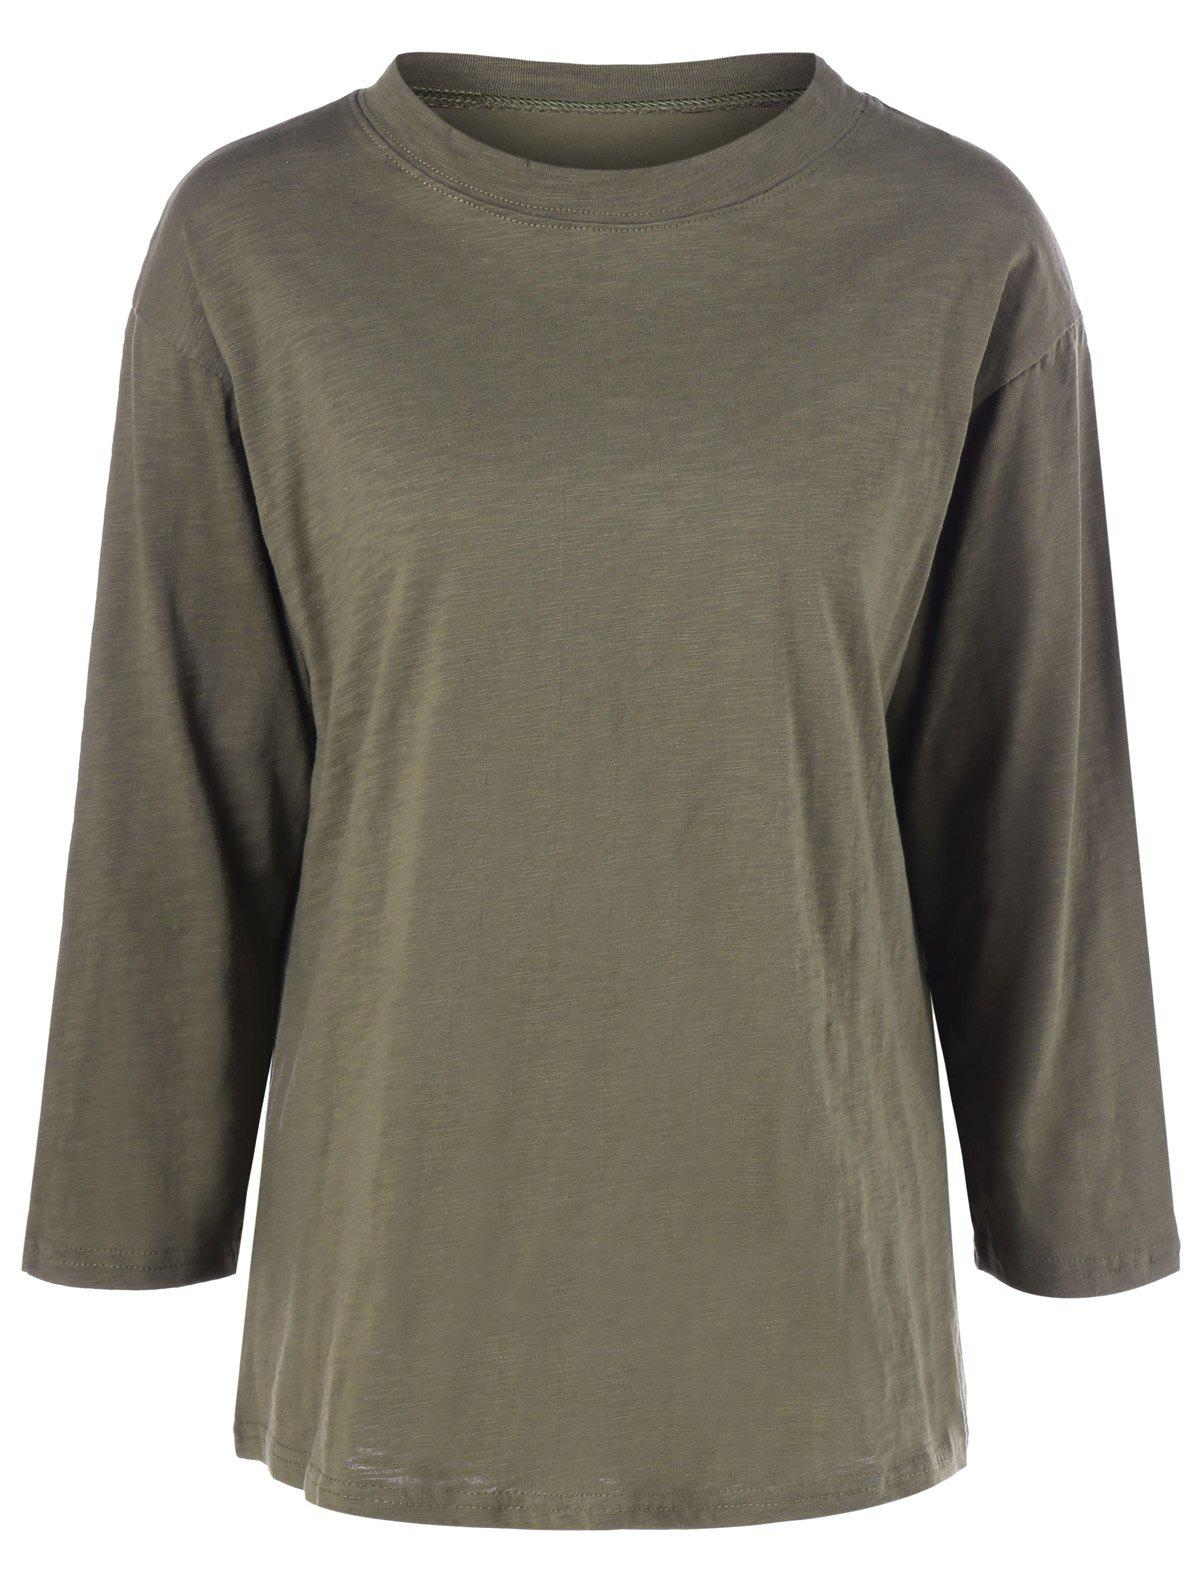 Plus Size Long Sleeve T Shirt - ARMY GREEN 4XL